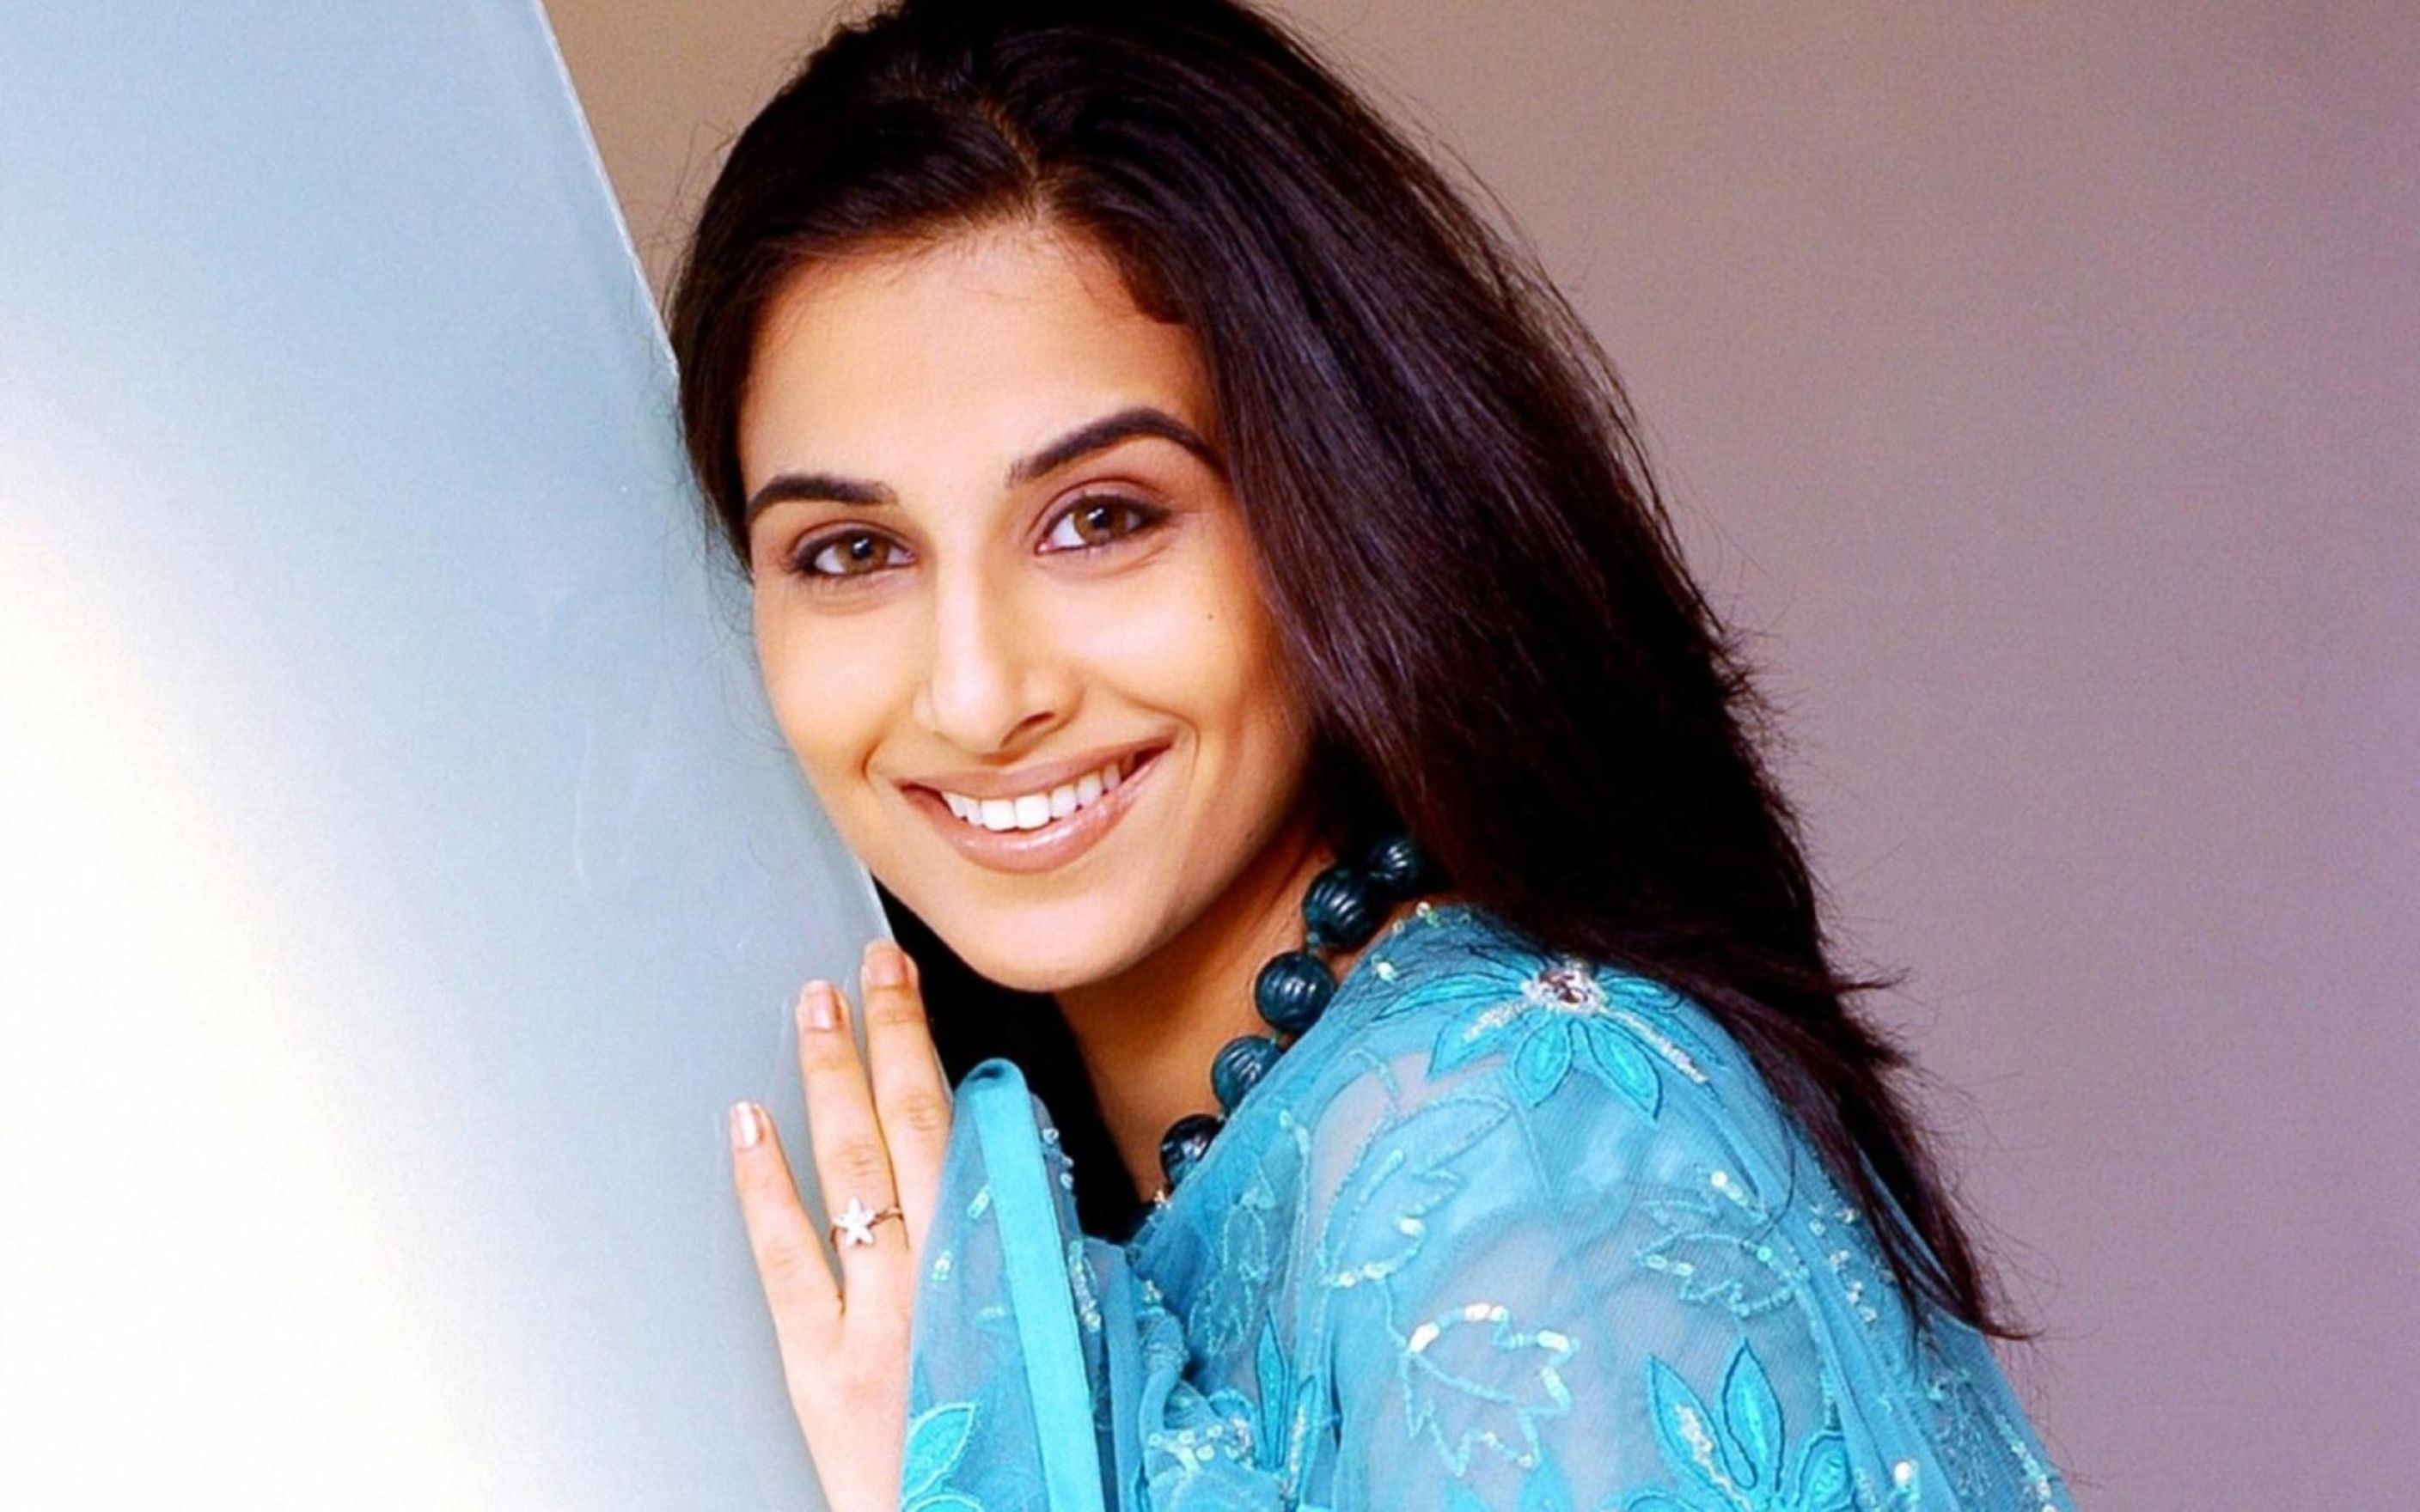 Download free HD Lovely Smile Face Of Indian Actress Vidya Balan Wallpaper, image